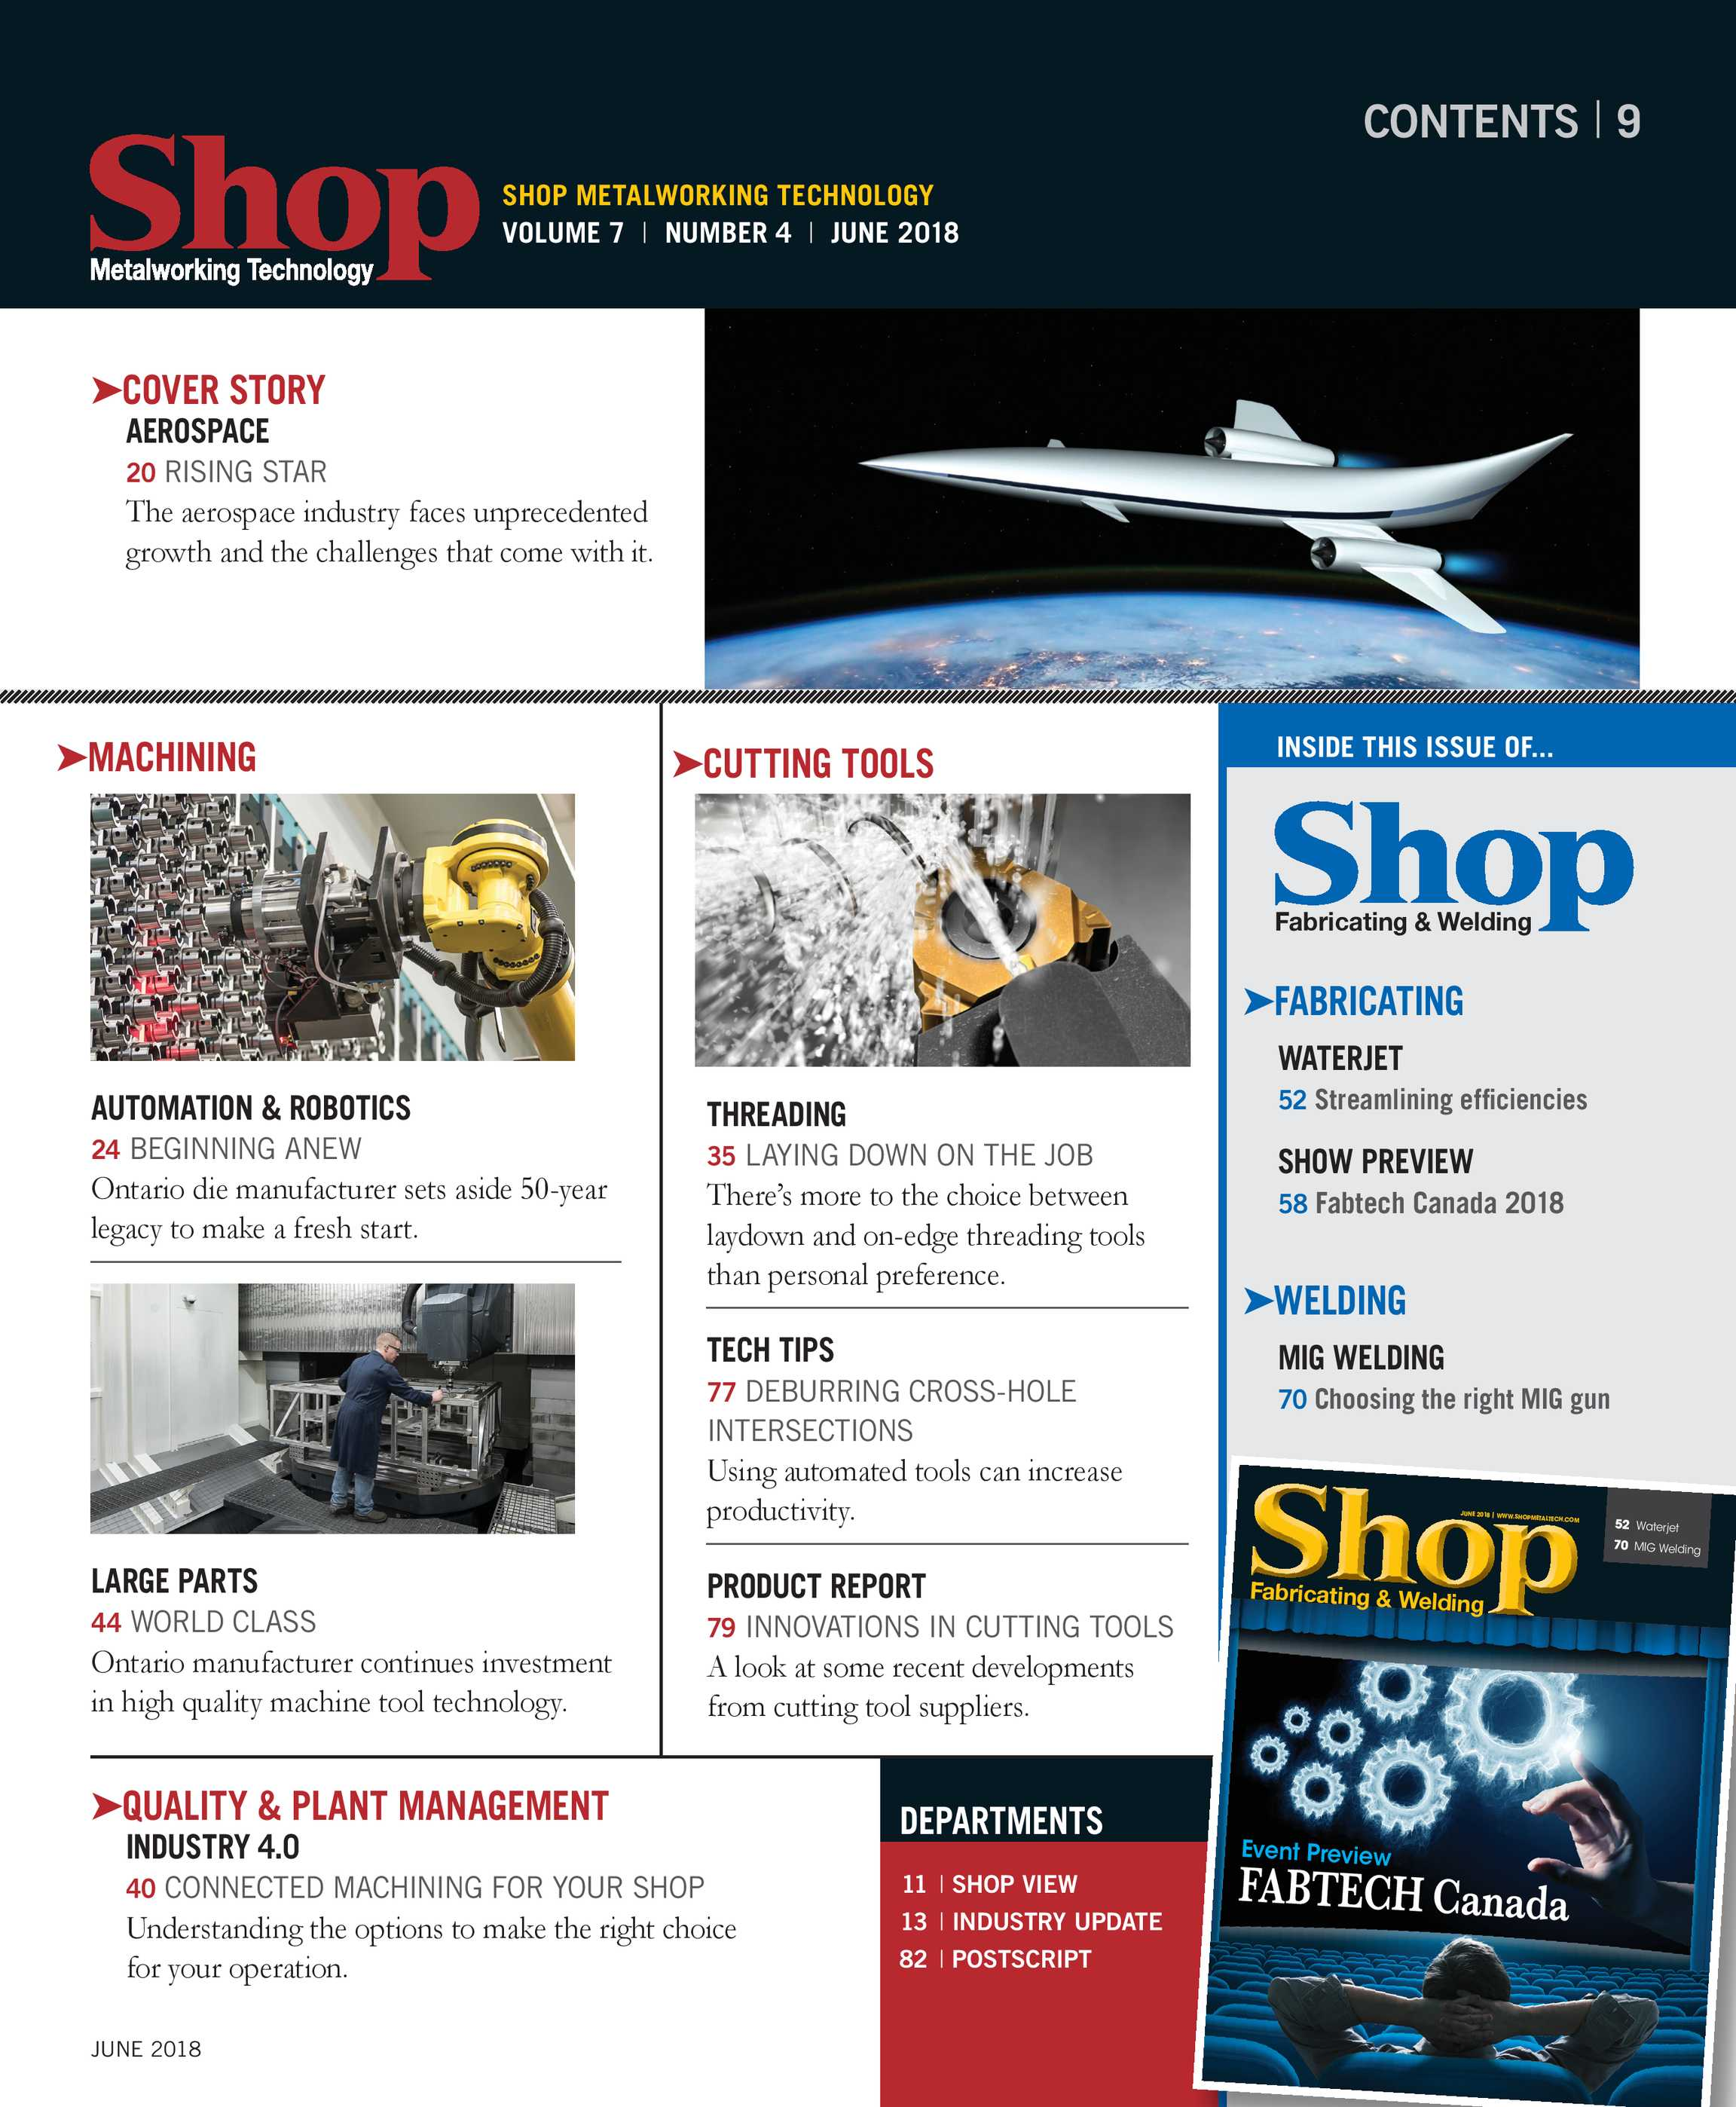 Shop Metalworking Technology - June 2018 - page 9